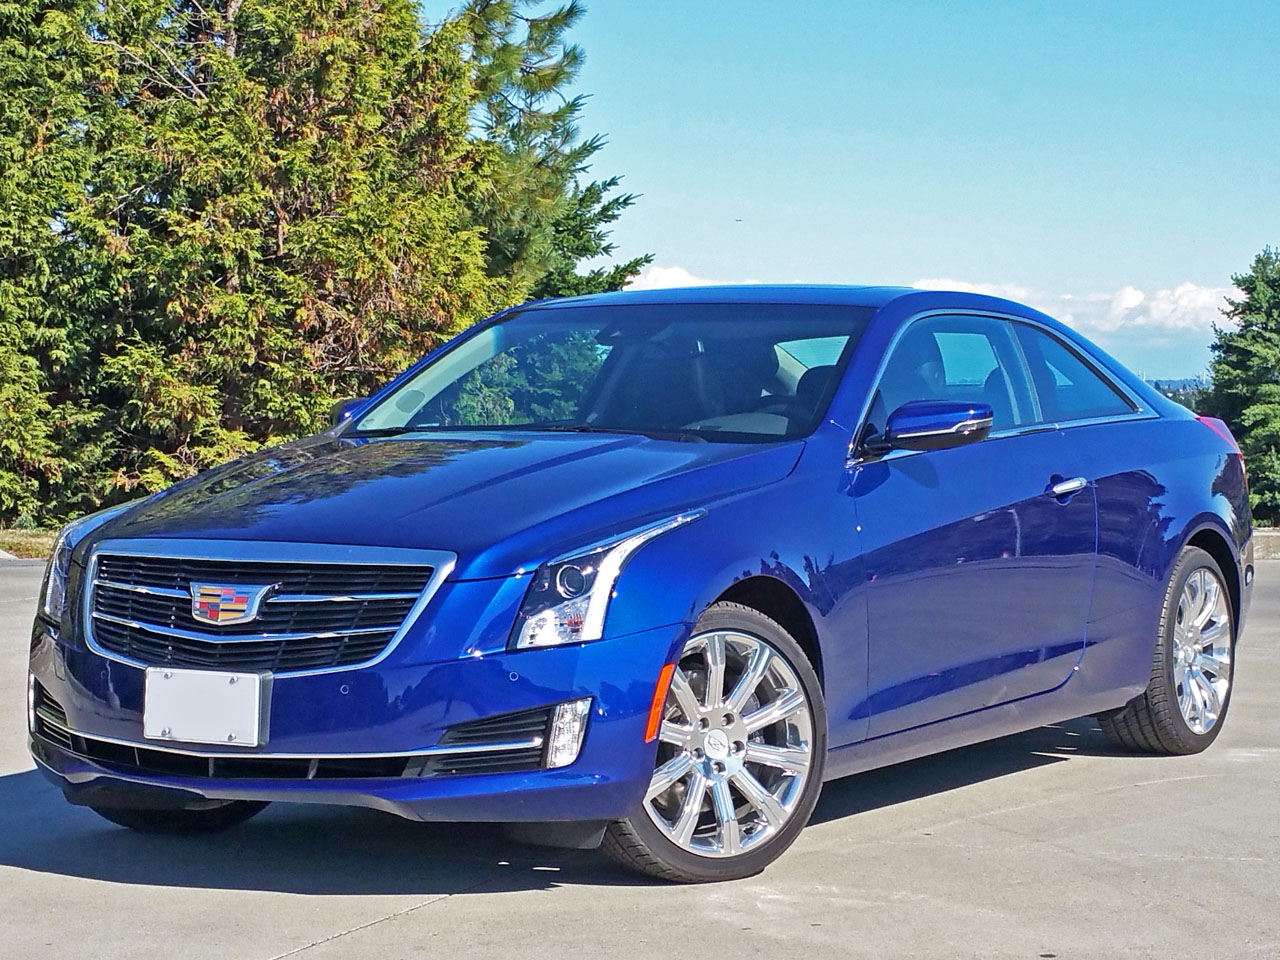 2015 Cadillac Ats Coupe 3 6 Road Test Review Carcostcanada